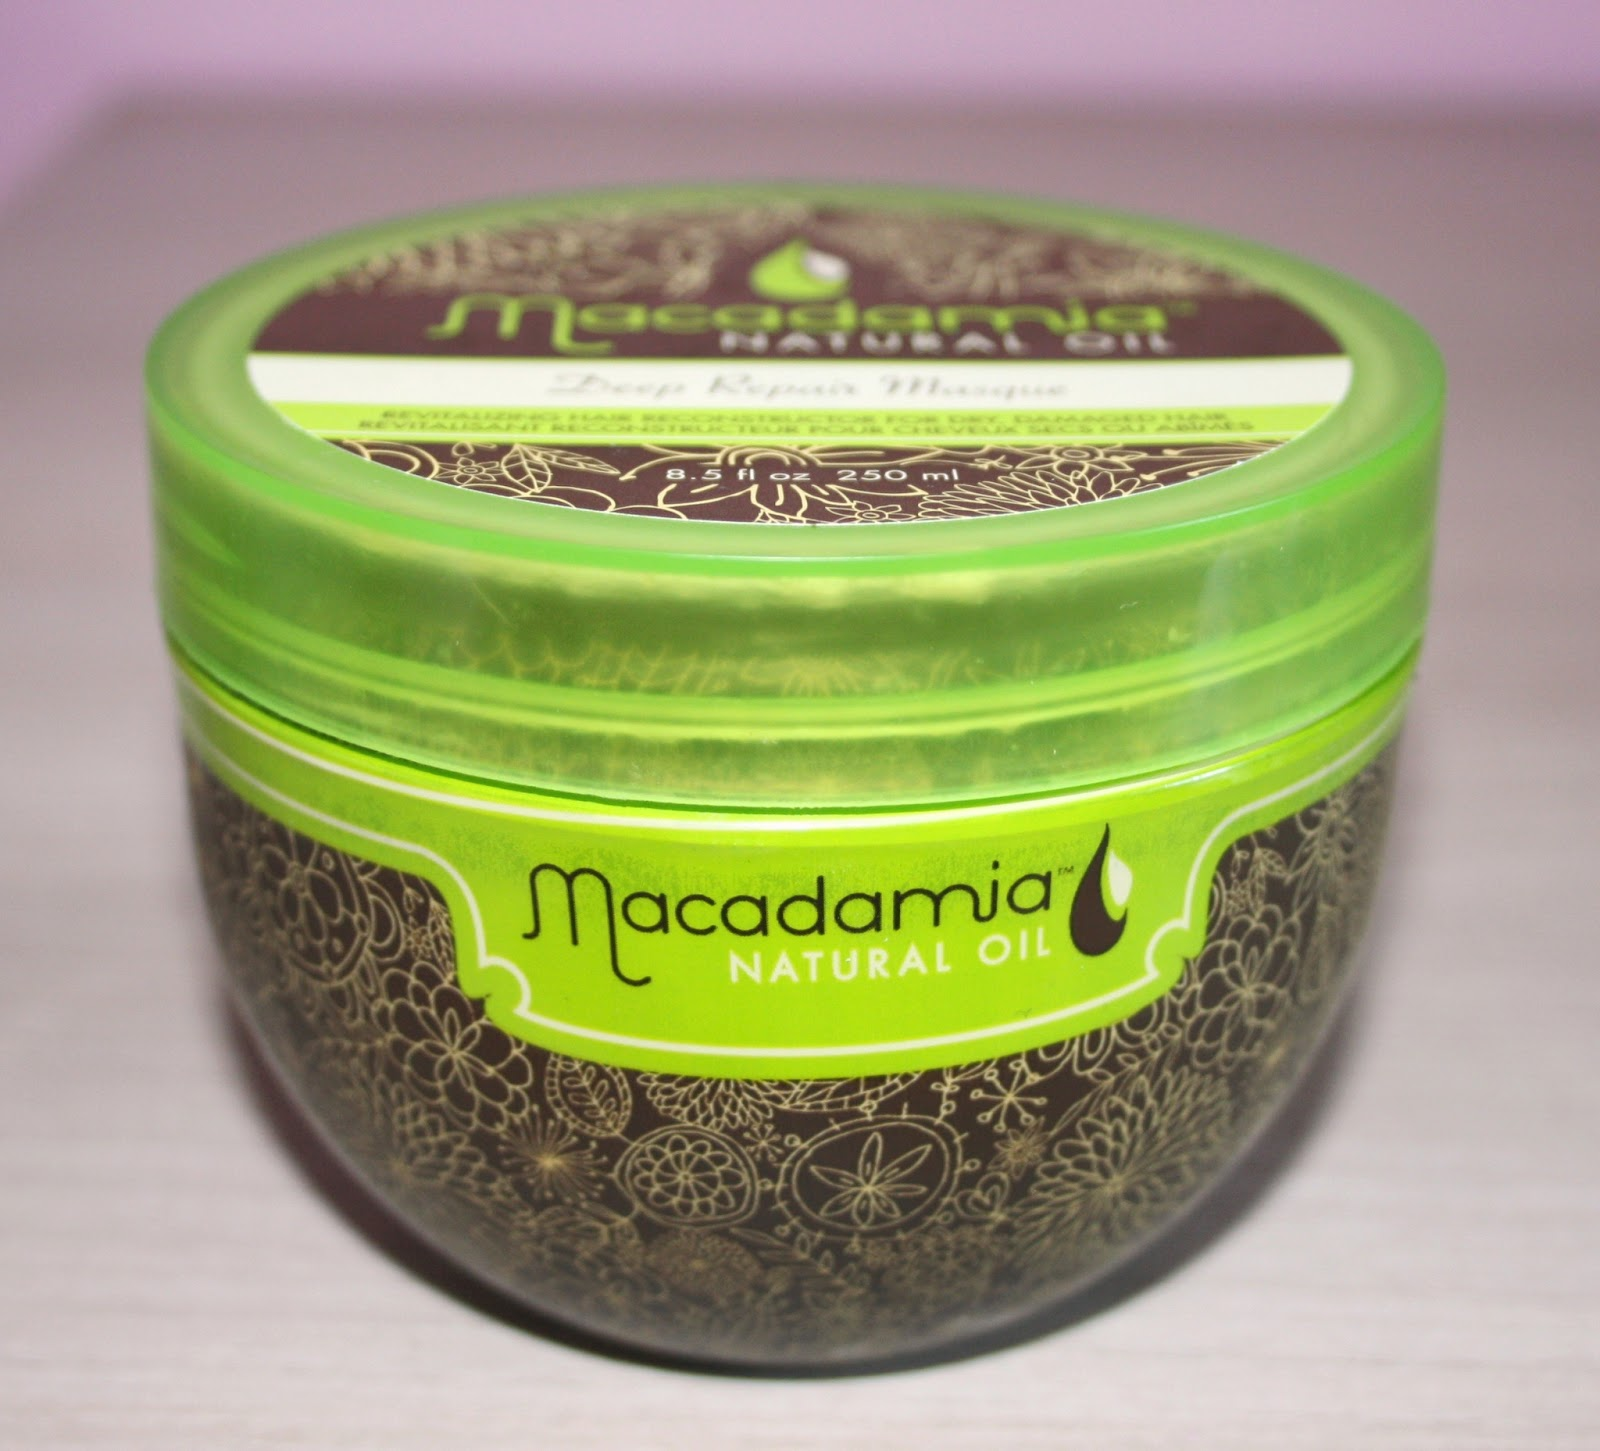 Vos Shampoings/masques du moment - Page 2 Macadamia+Natural+Oil+Deep+Repair+Masque